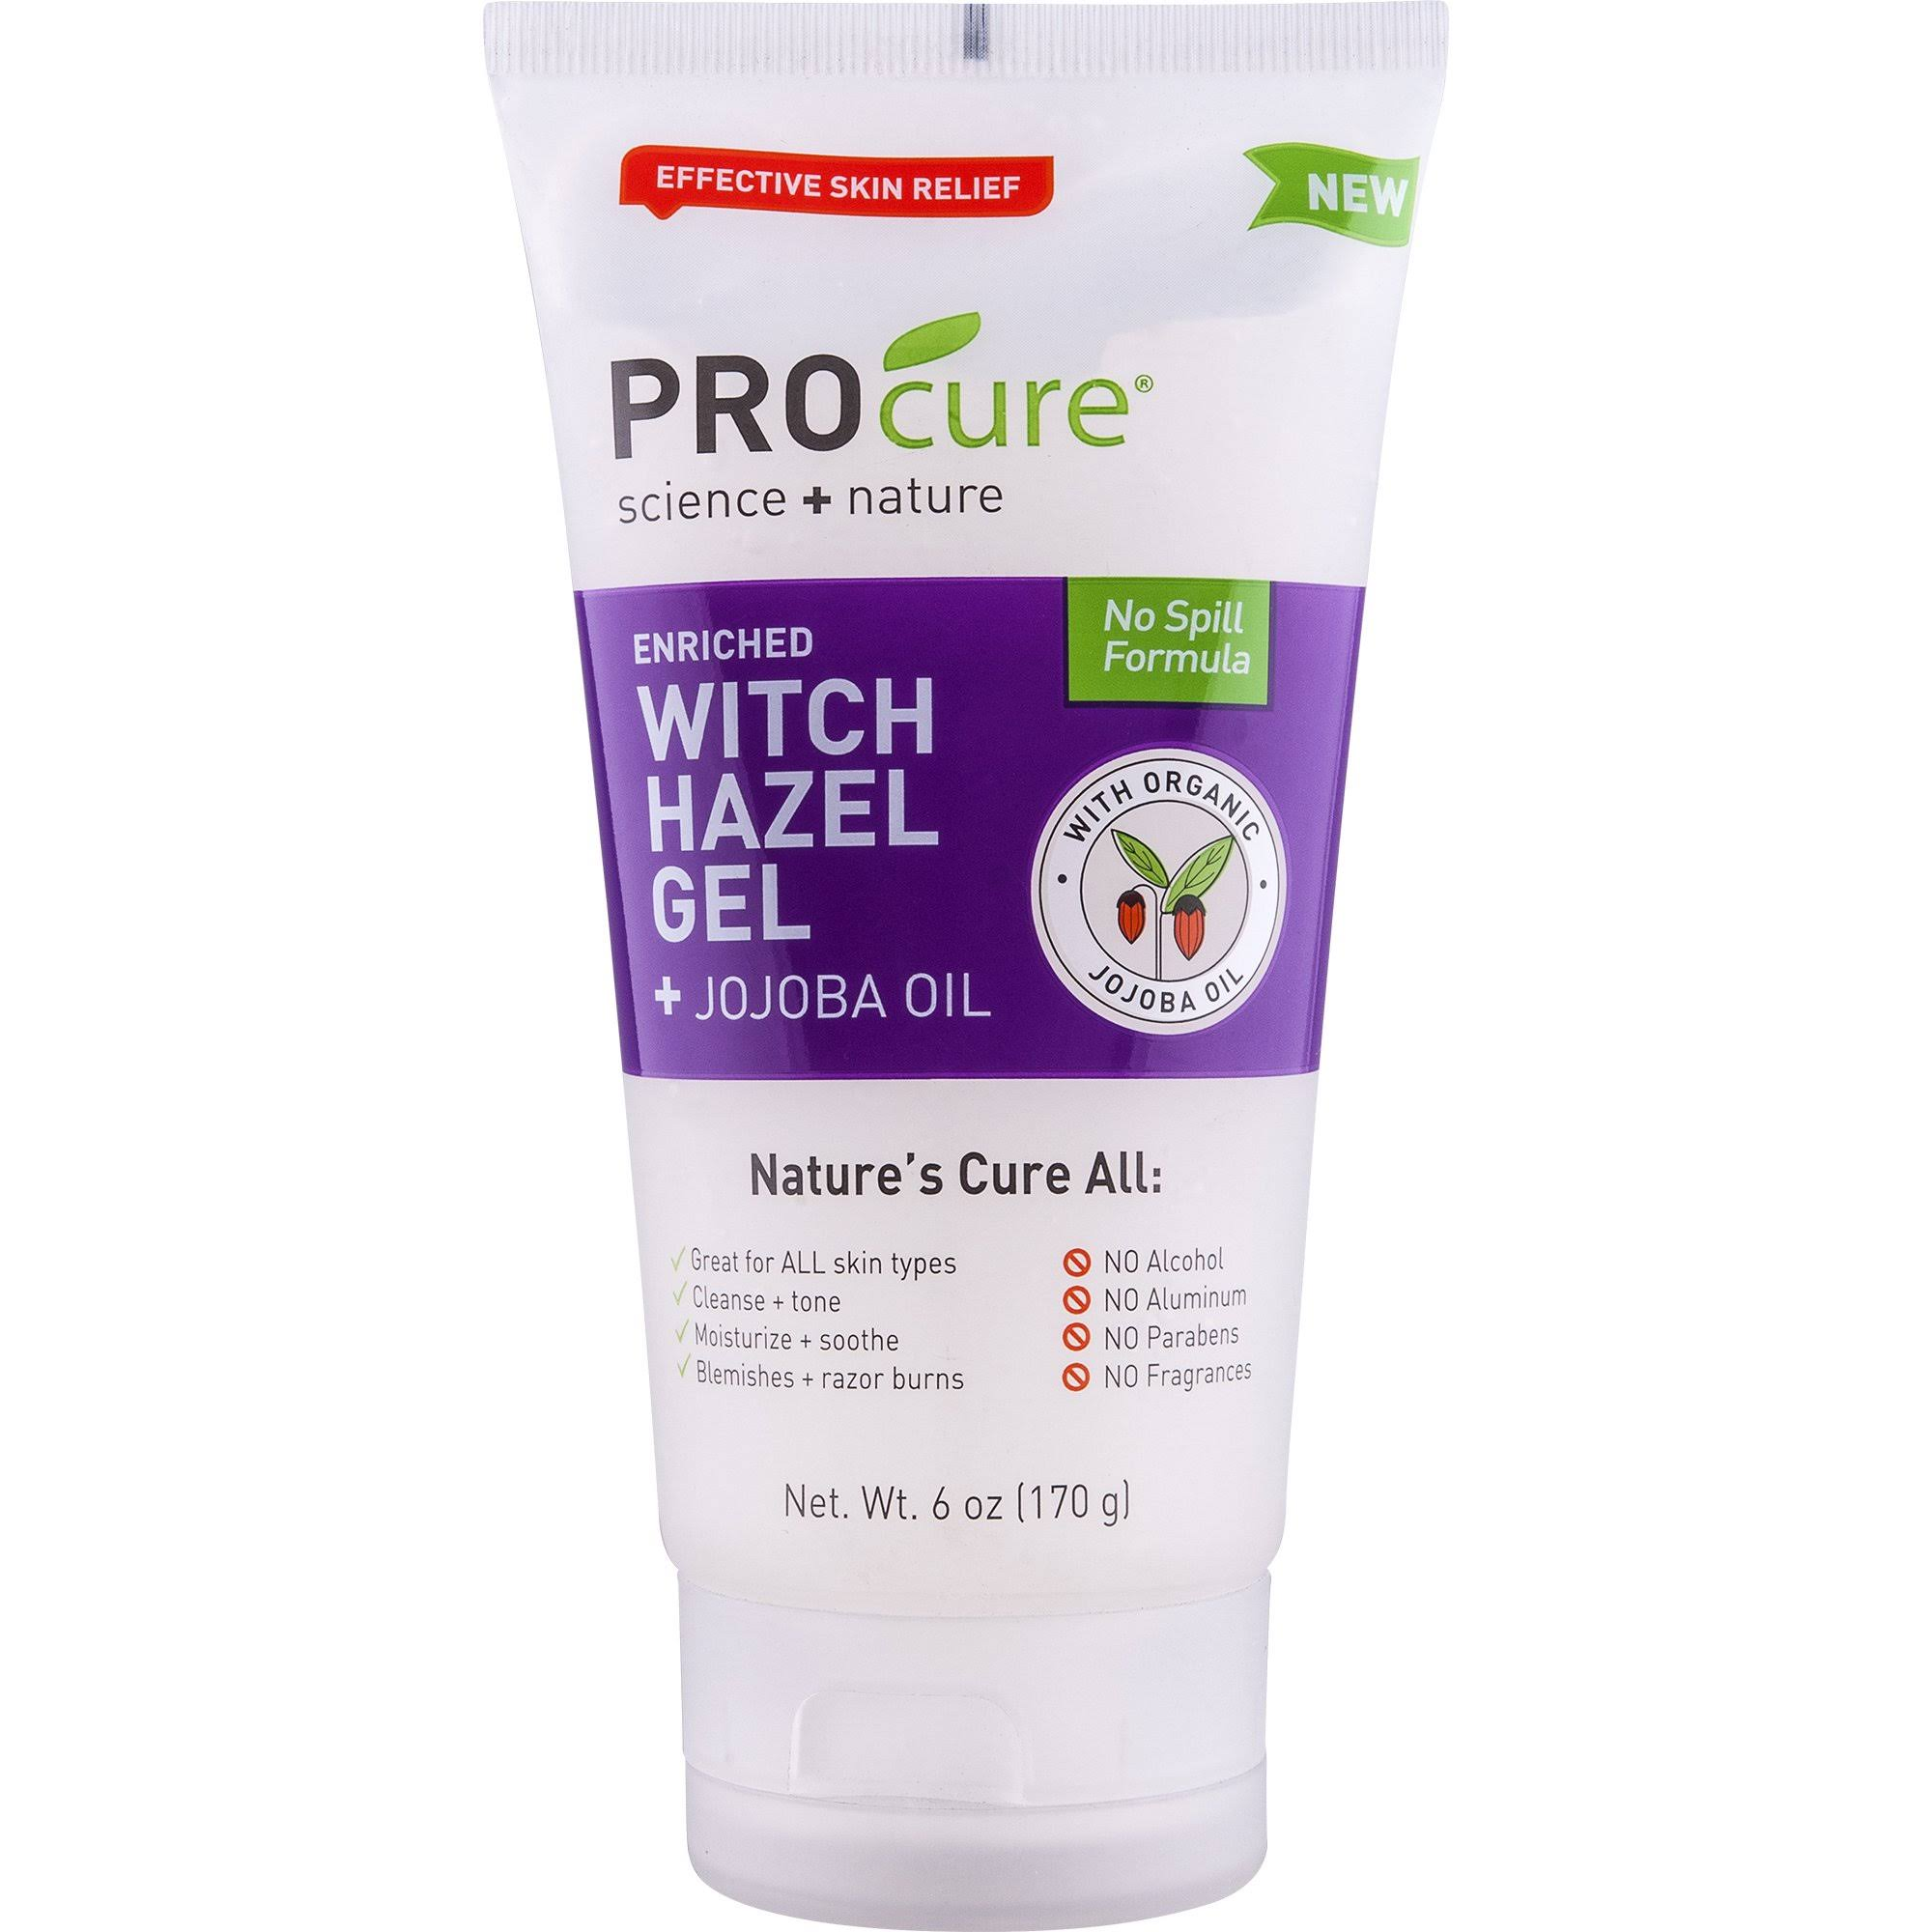 Procure Witch Hazel Gel - With Jojoba Oil, 6oz